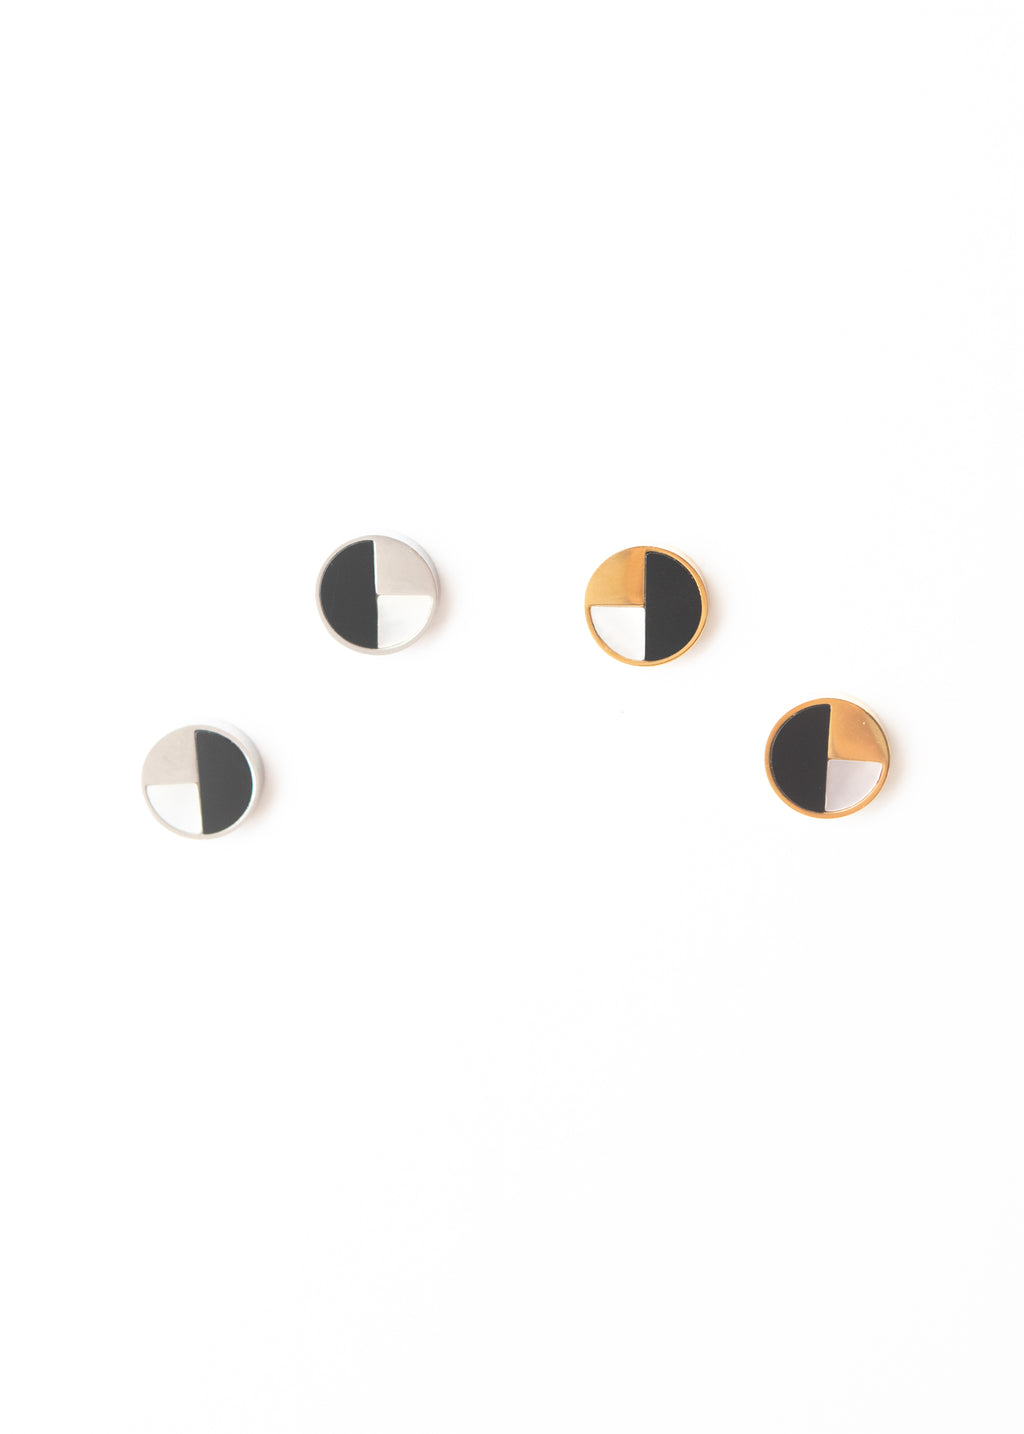 Beck & Boosh Division Studs Circle Studs with One Side Black and One Side Split with Upper Side Plated Gold or Silver and Bottom Side an Opalite Insert Plated Gold and Silver Stainless Steel